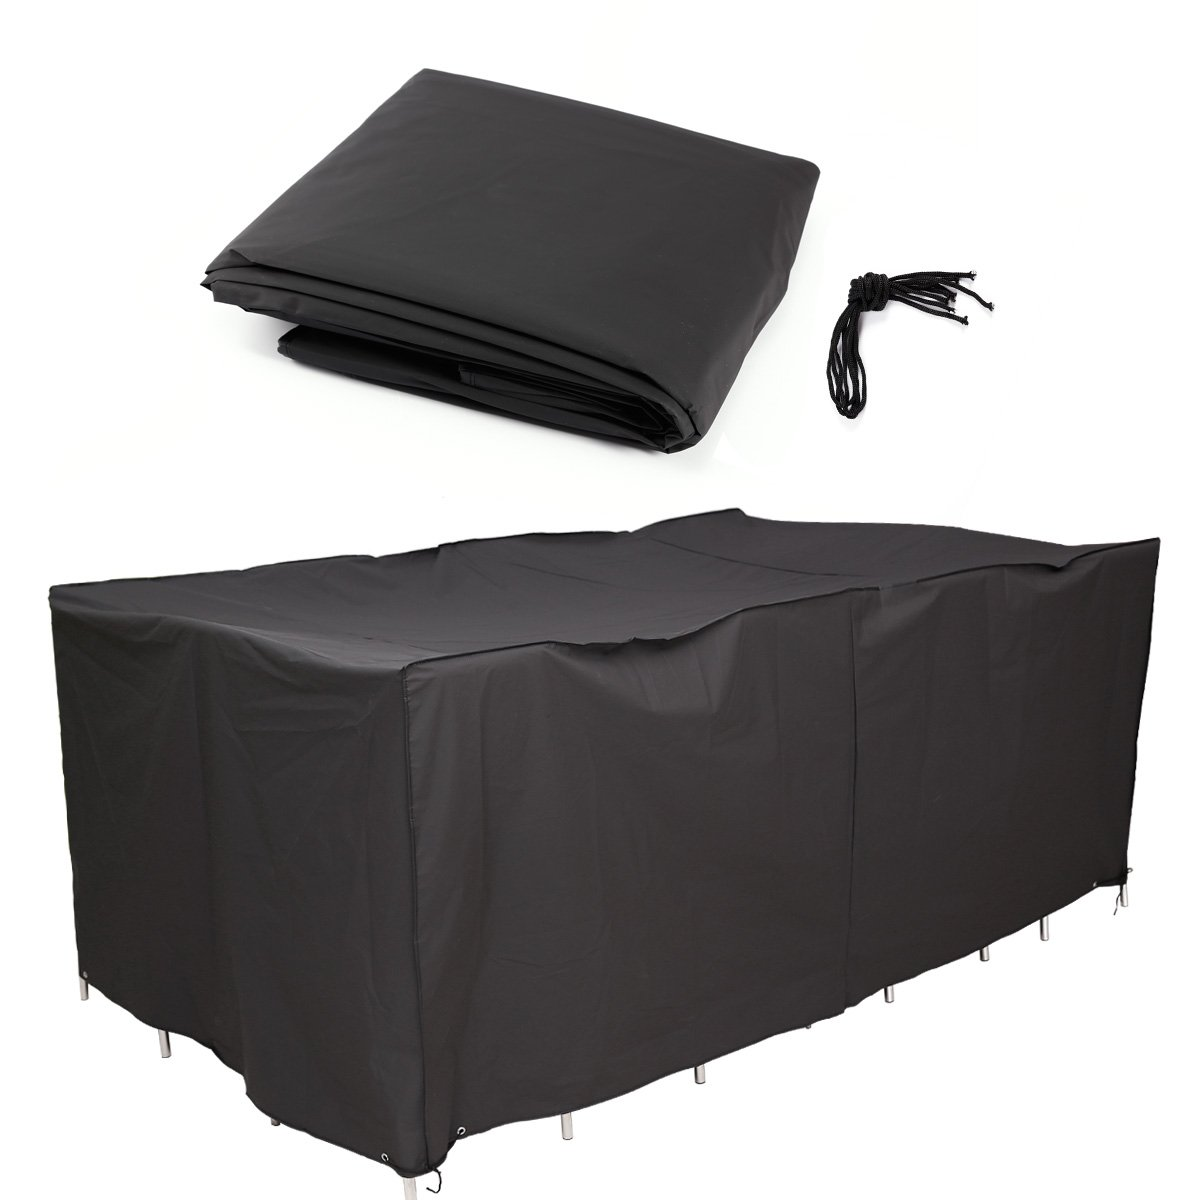 SurePromise LARGE GARDEN PATIO FURNITURE COVER WATERPROOF TABLE CHAIR SHELTER 242 x 162 x 100cm SurePromise Limited